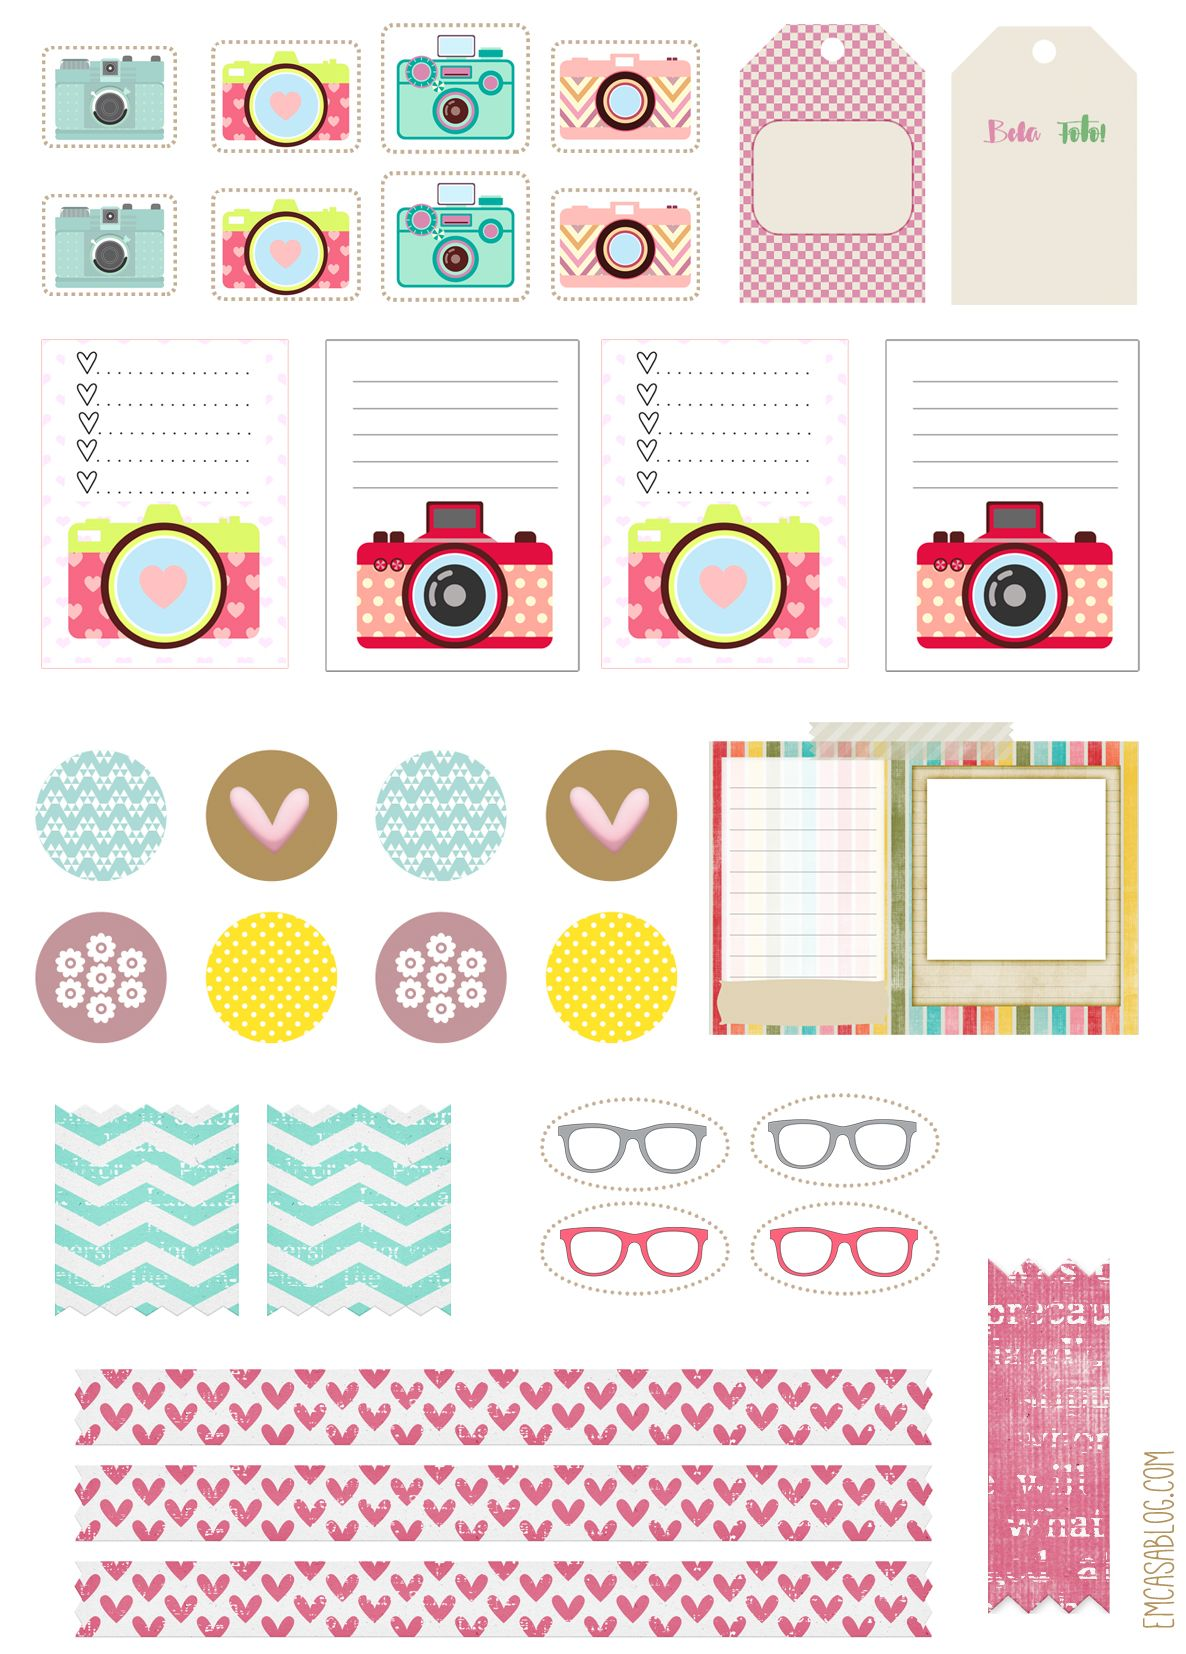 em casa blog: free printable planner stickers | planners & bullet